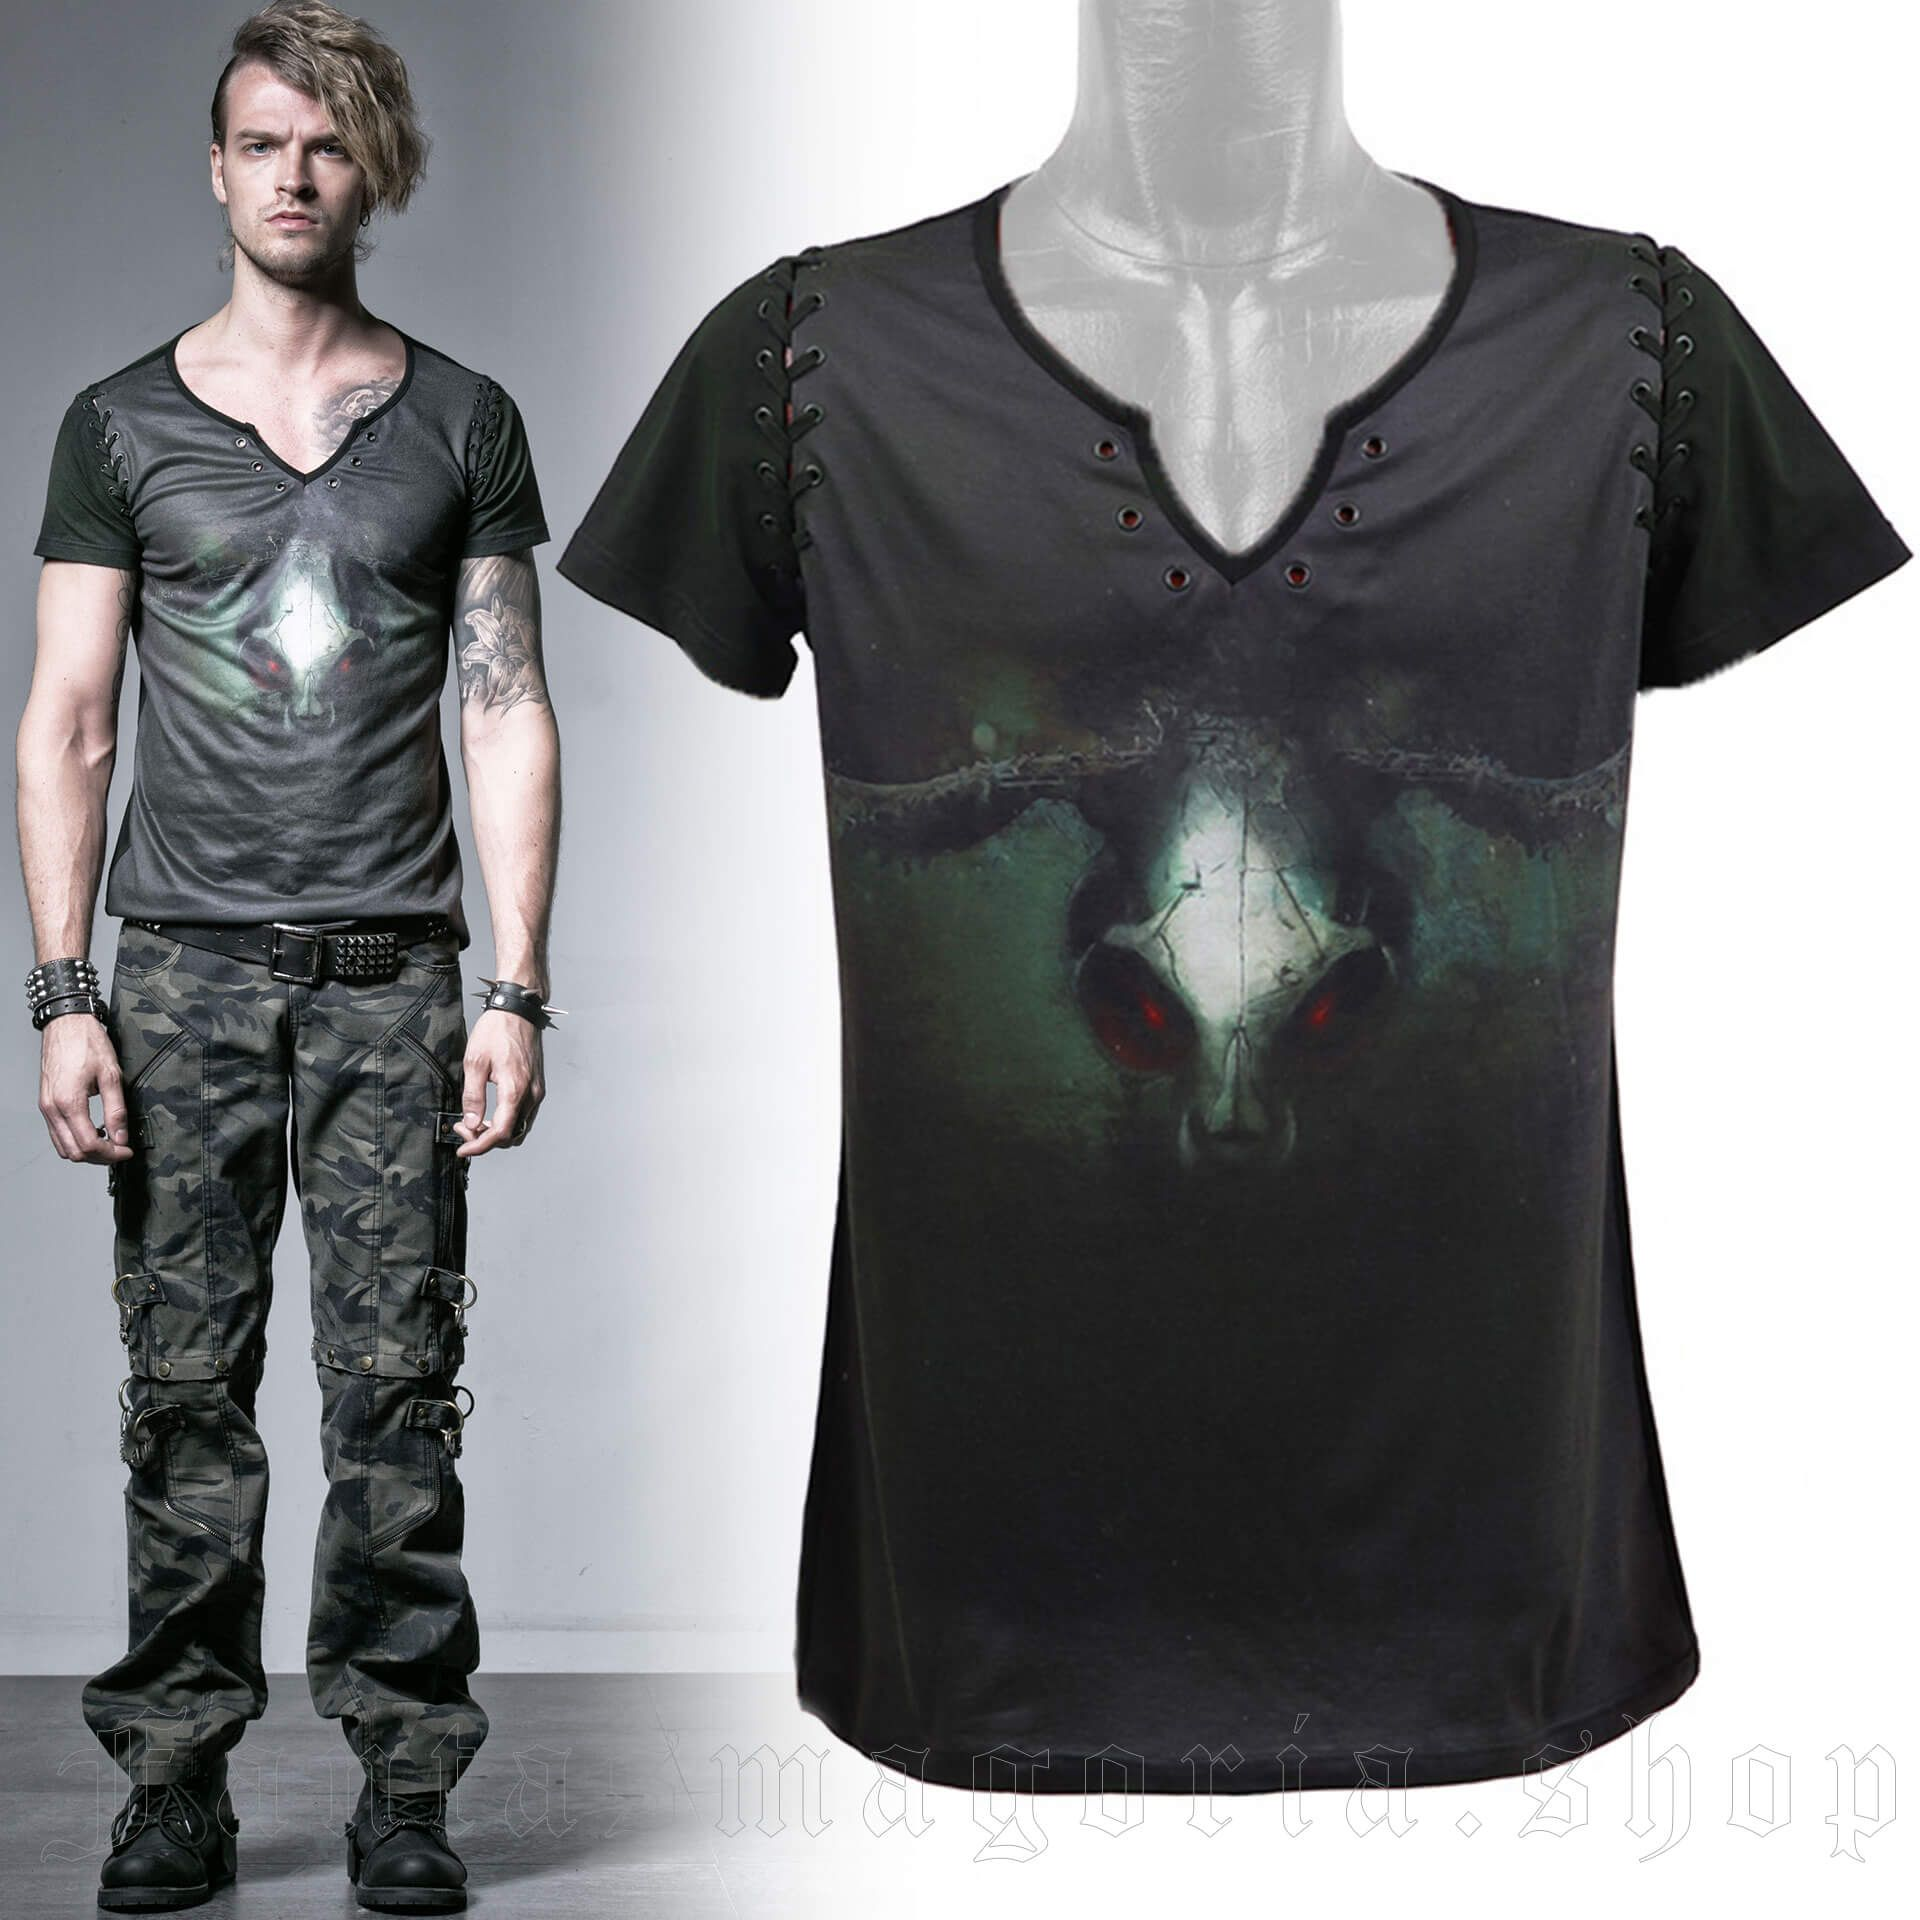 men's Silent Hill T-Shirt by PUNK RAVE brand, code: T-354/GR